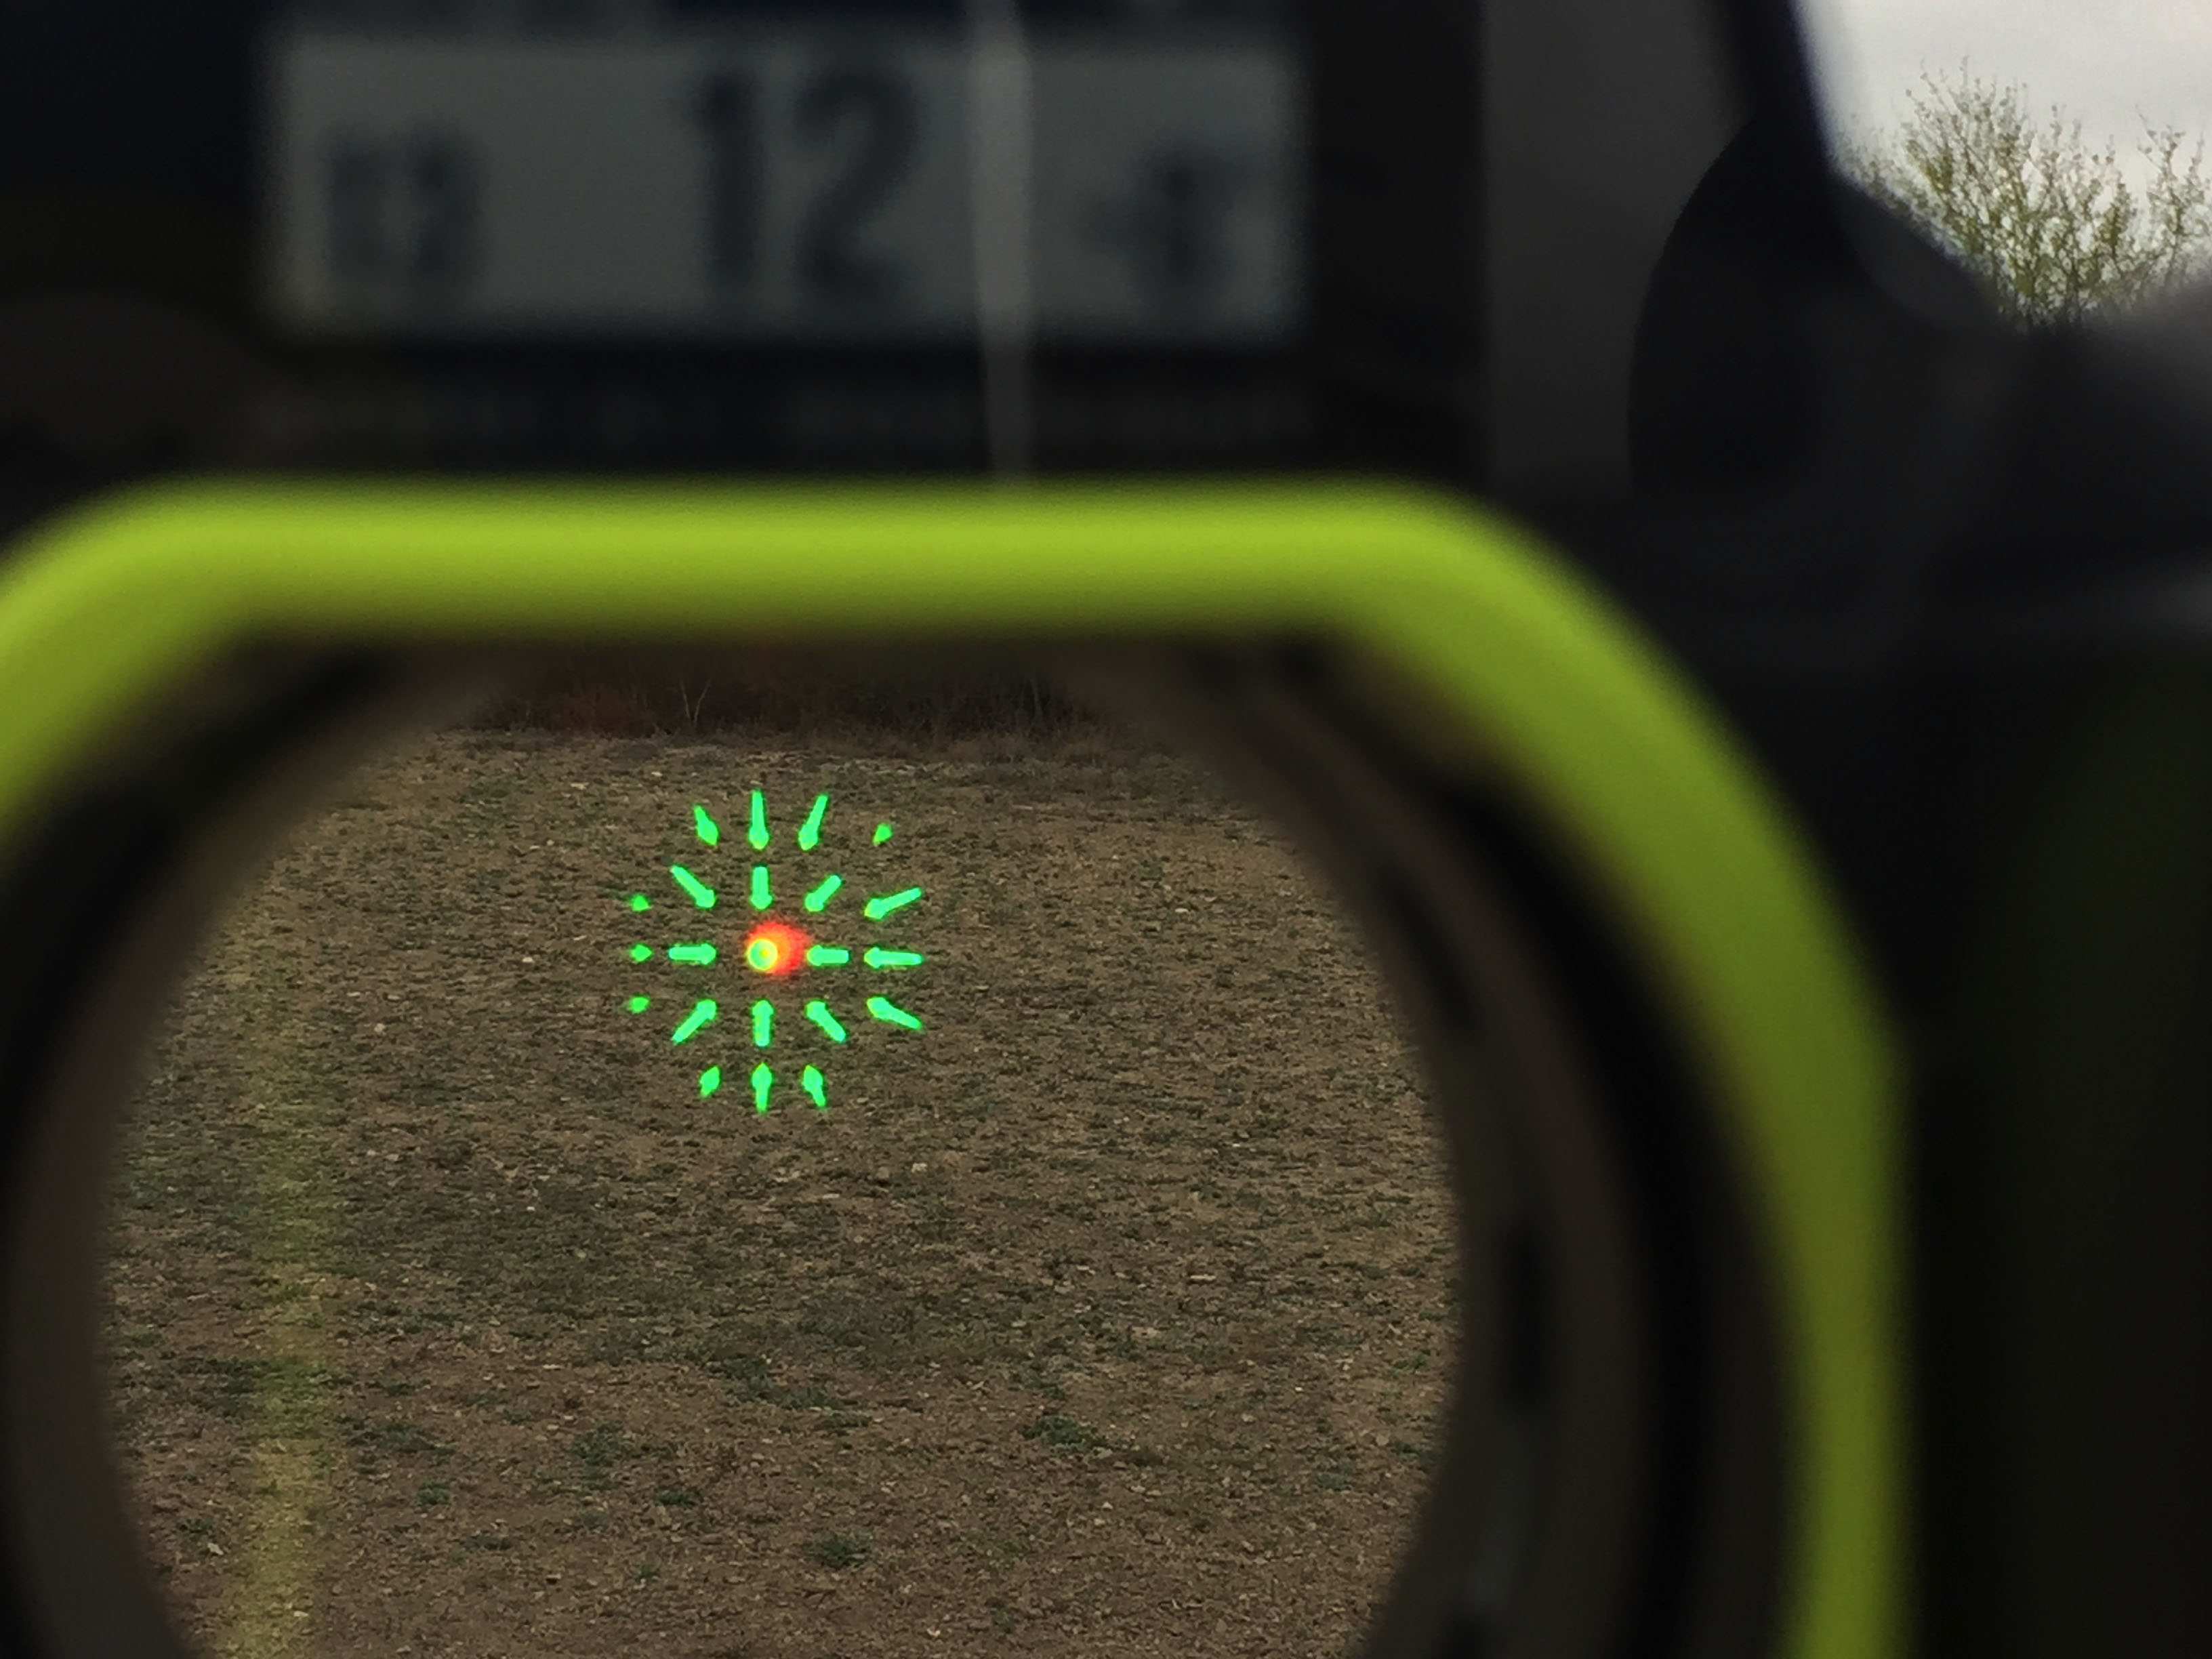 Garmin Xero A1i Bow Sight Review: Field and Hunt Tested